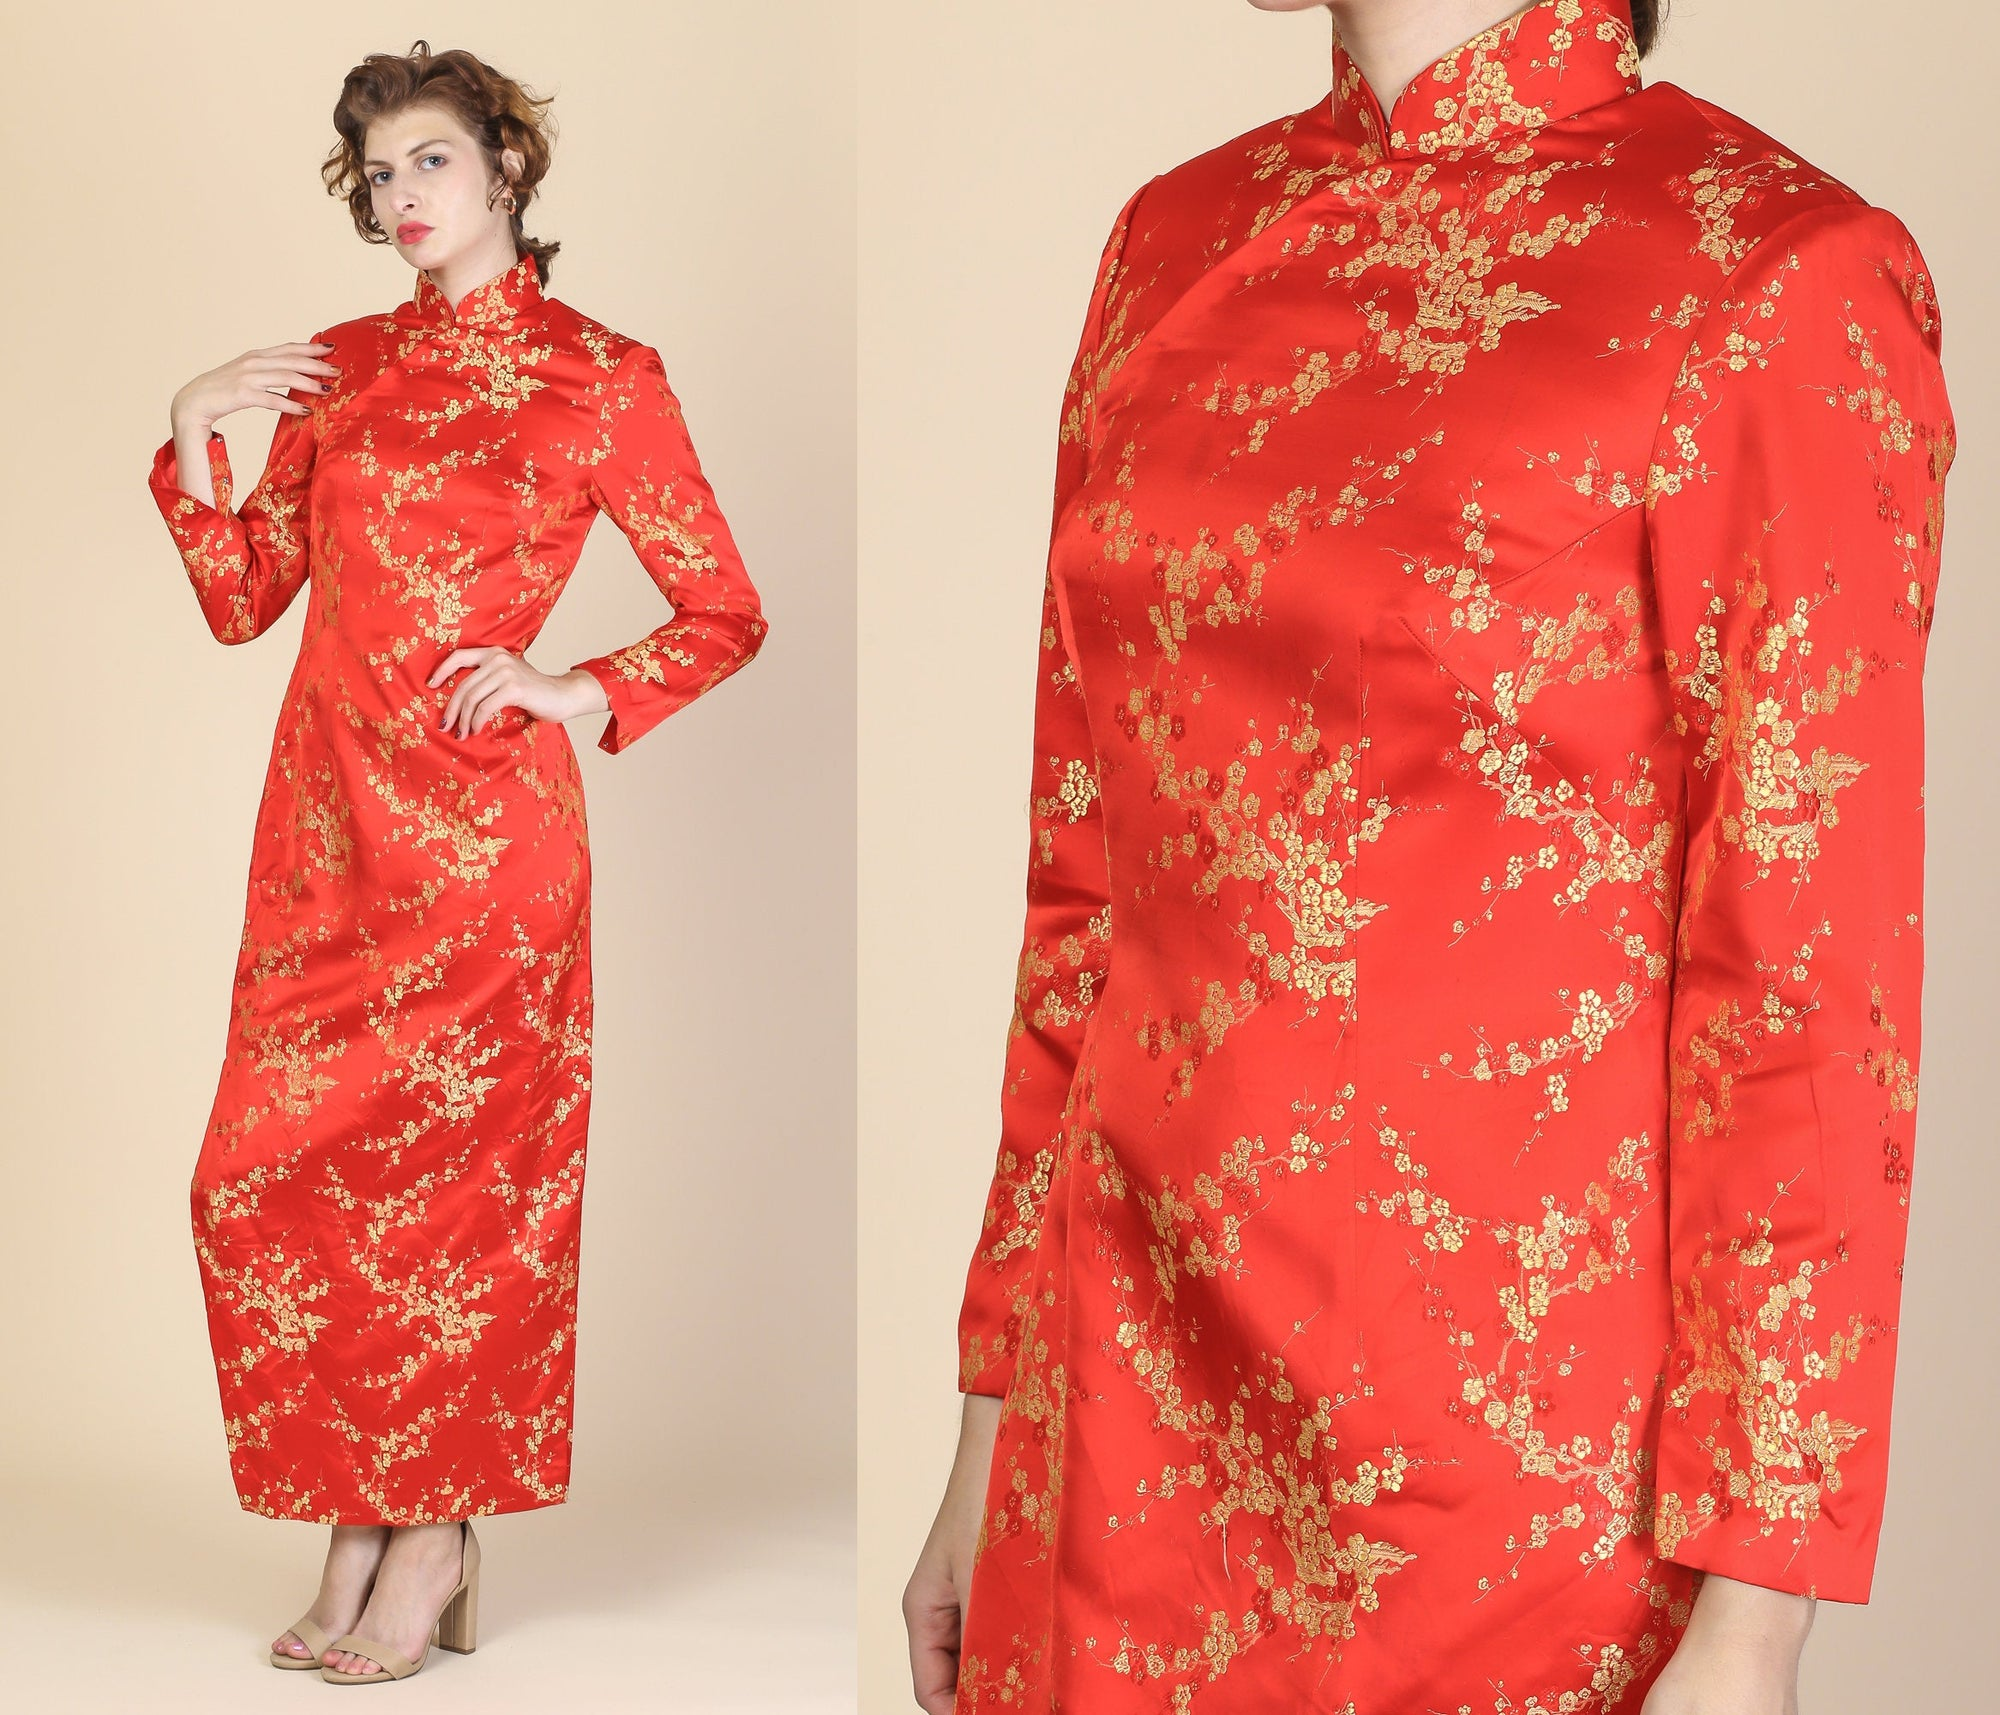 Vintage Red Cheongsam Maxi Dress - Medium